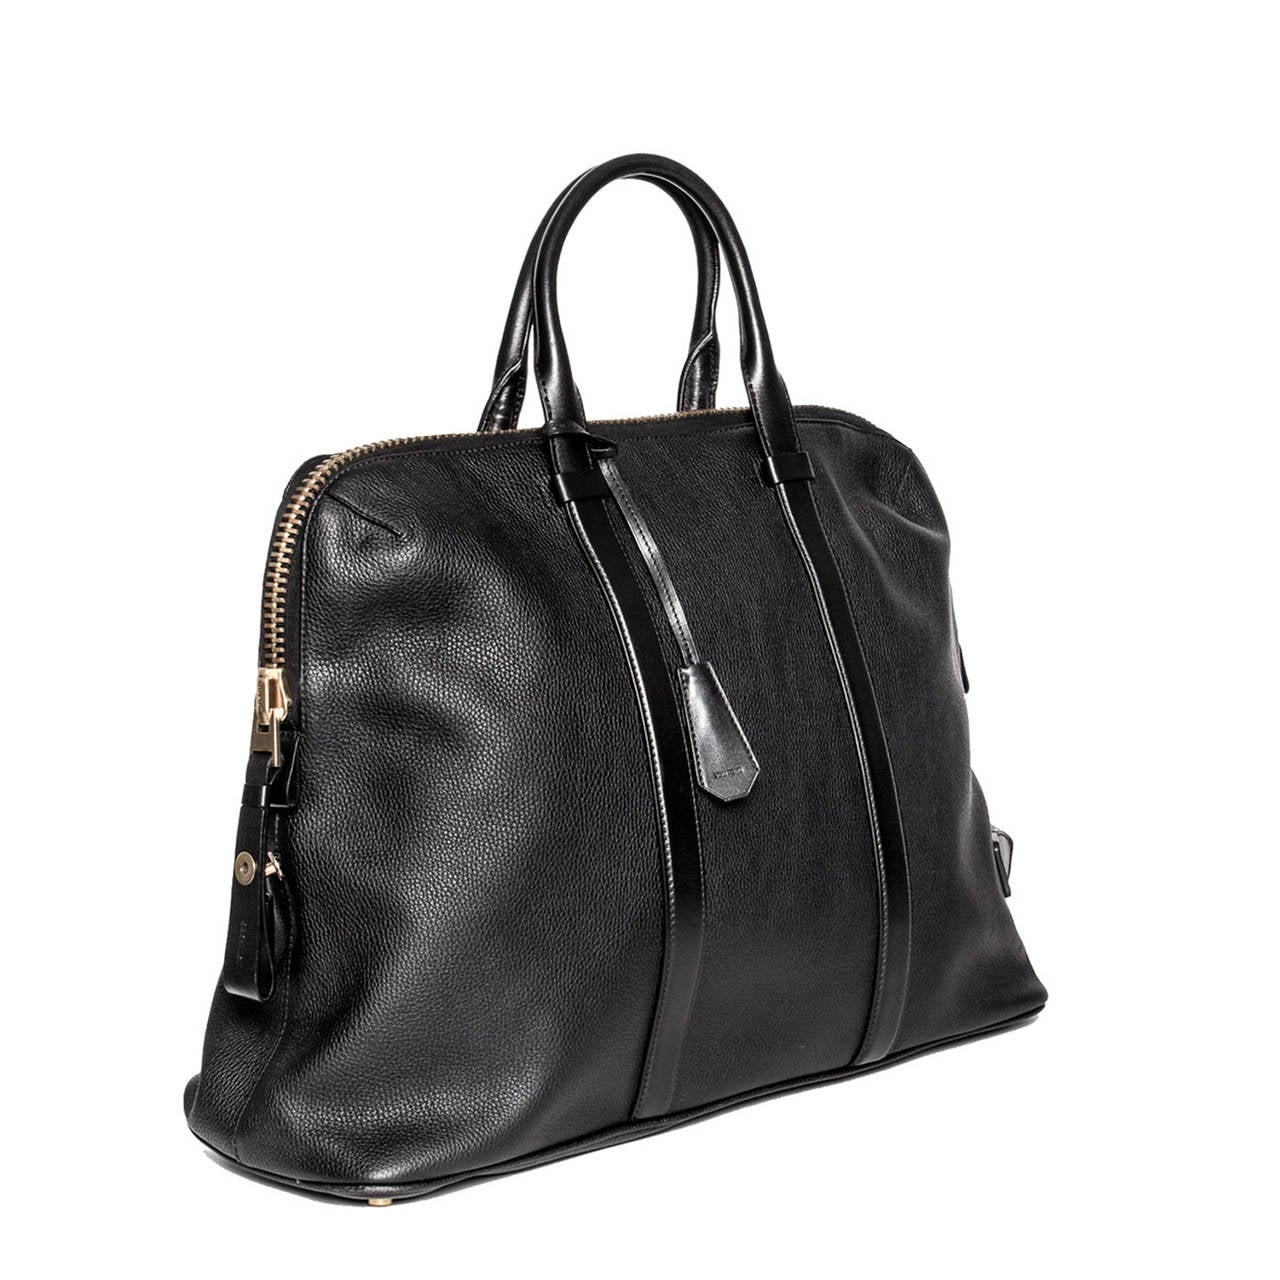 Tom Ford Black Leather Oversize/Travel Bag In New Never_worn Condition For Sale In Brooklyn, NY